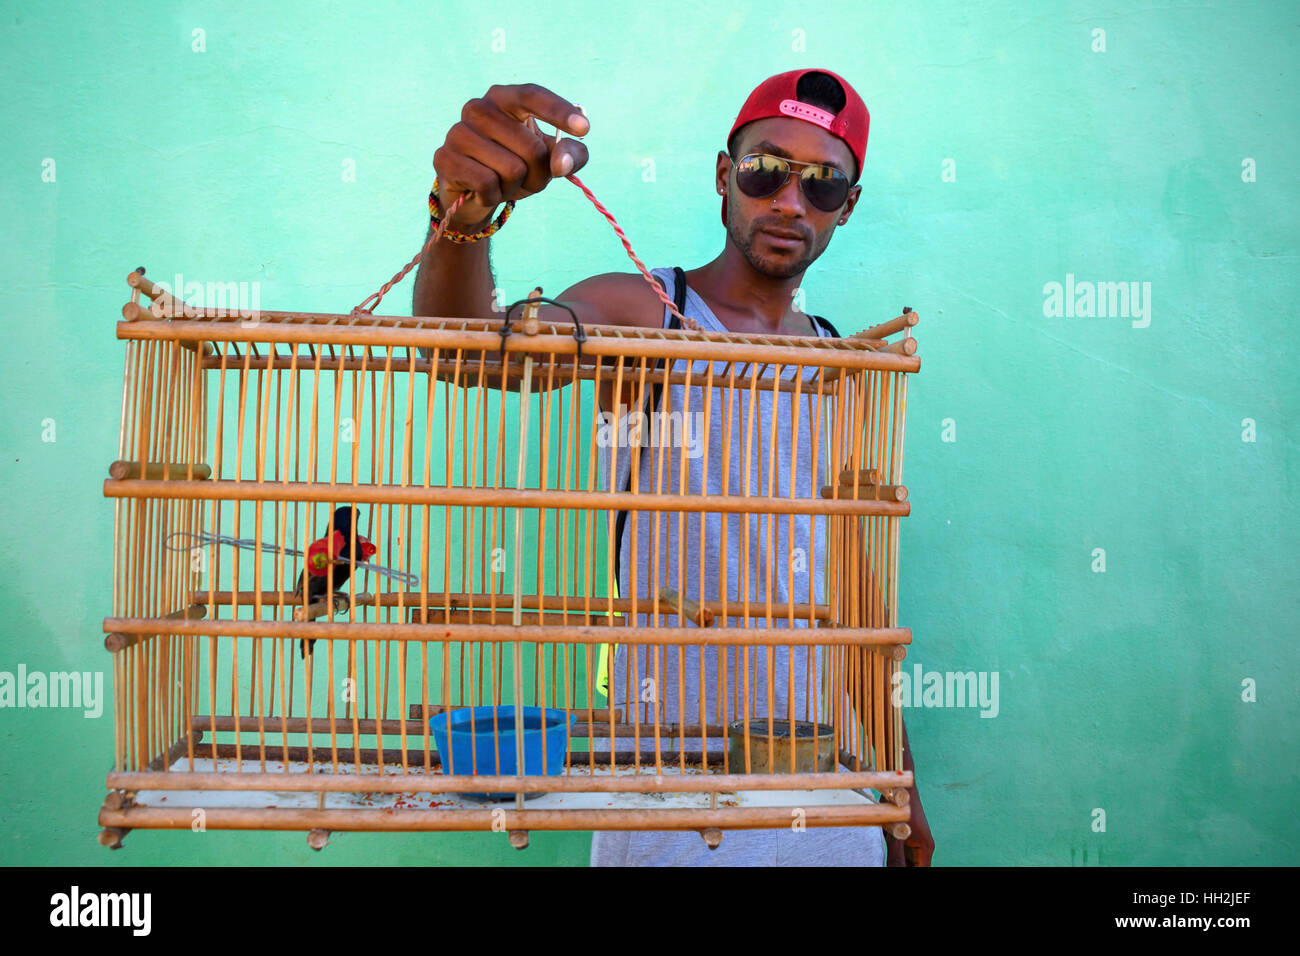 Portrait of cuban man carrying a cage with bird inside in Trinidad, Cuba - Stock Image